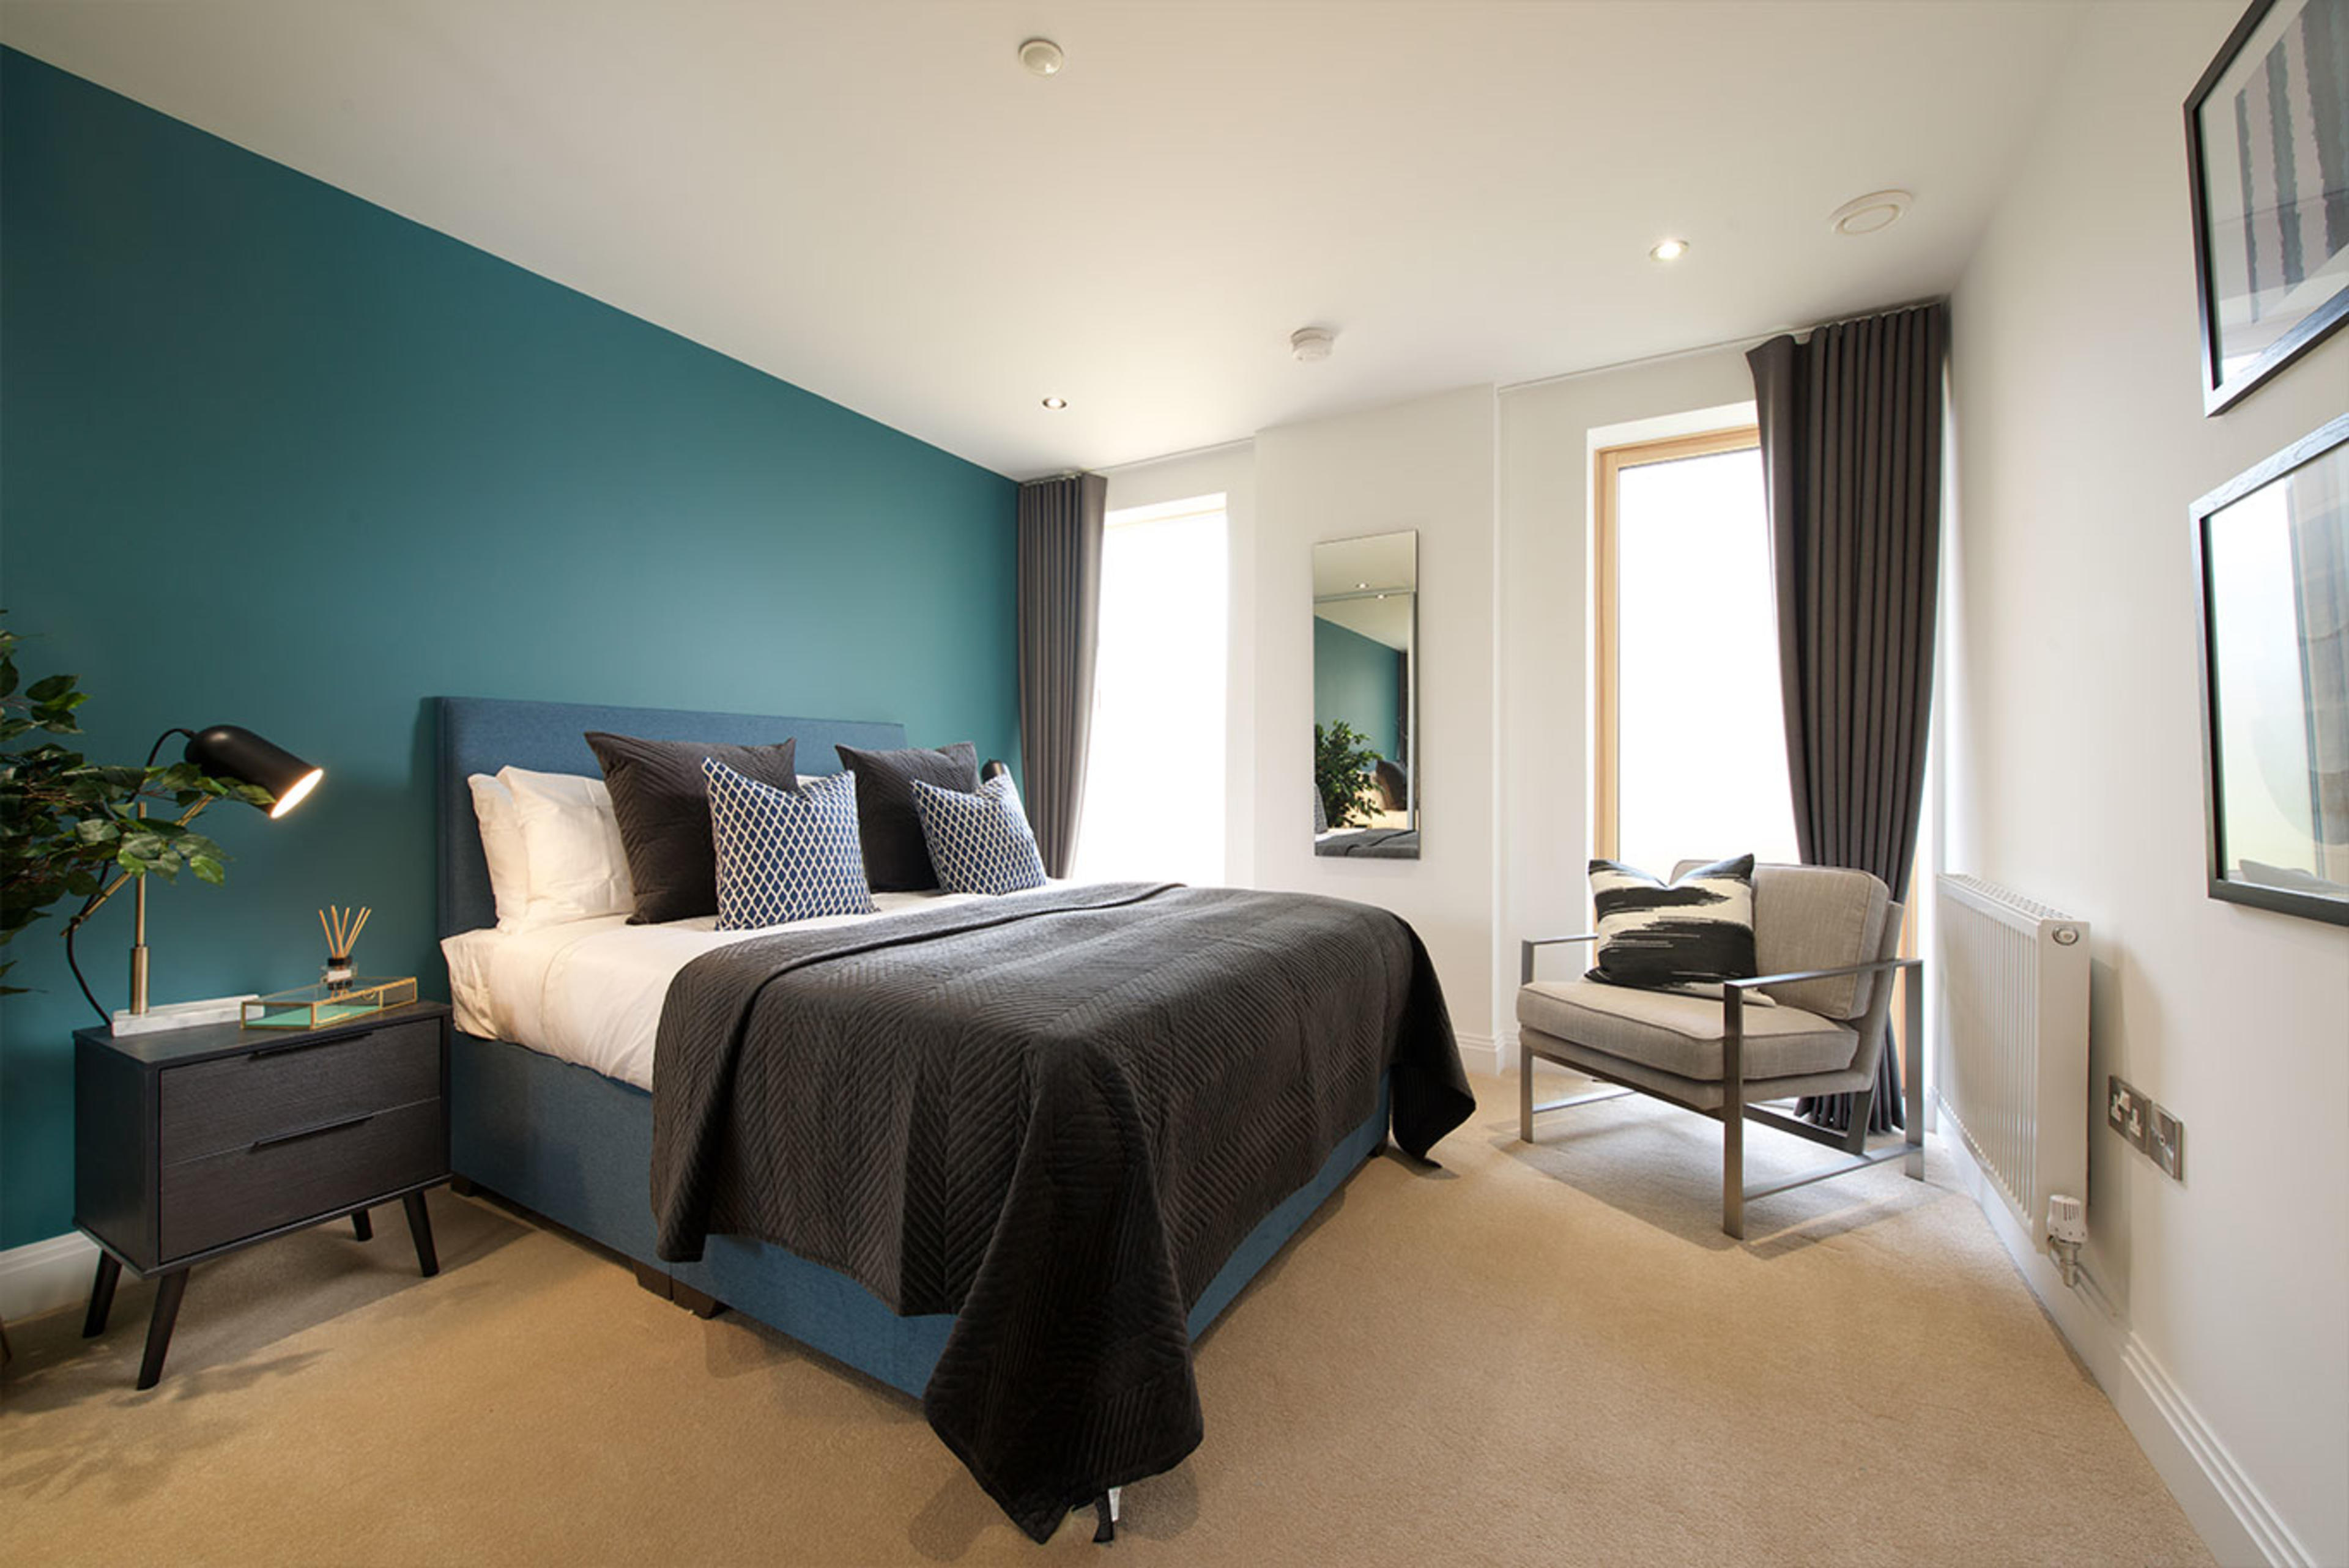 Insignia-Place-Bedroom-1